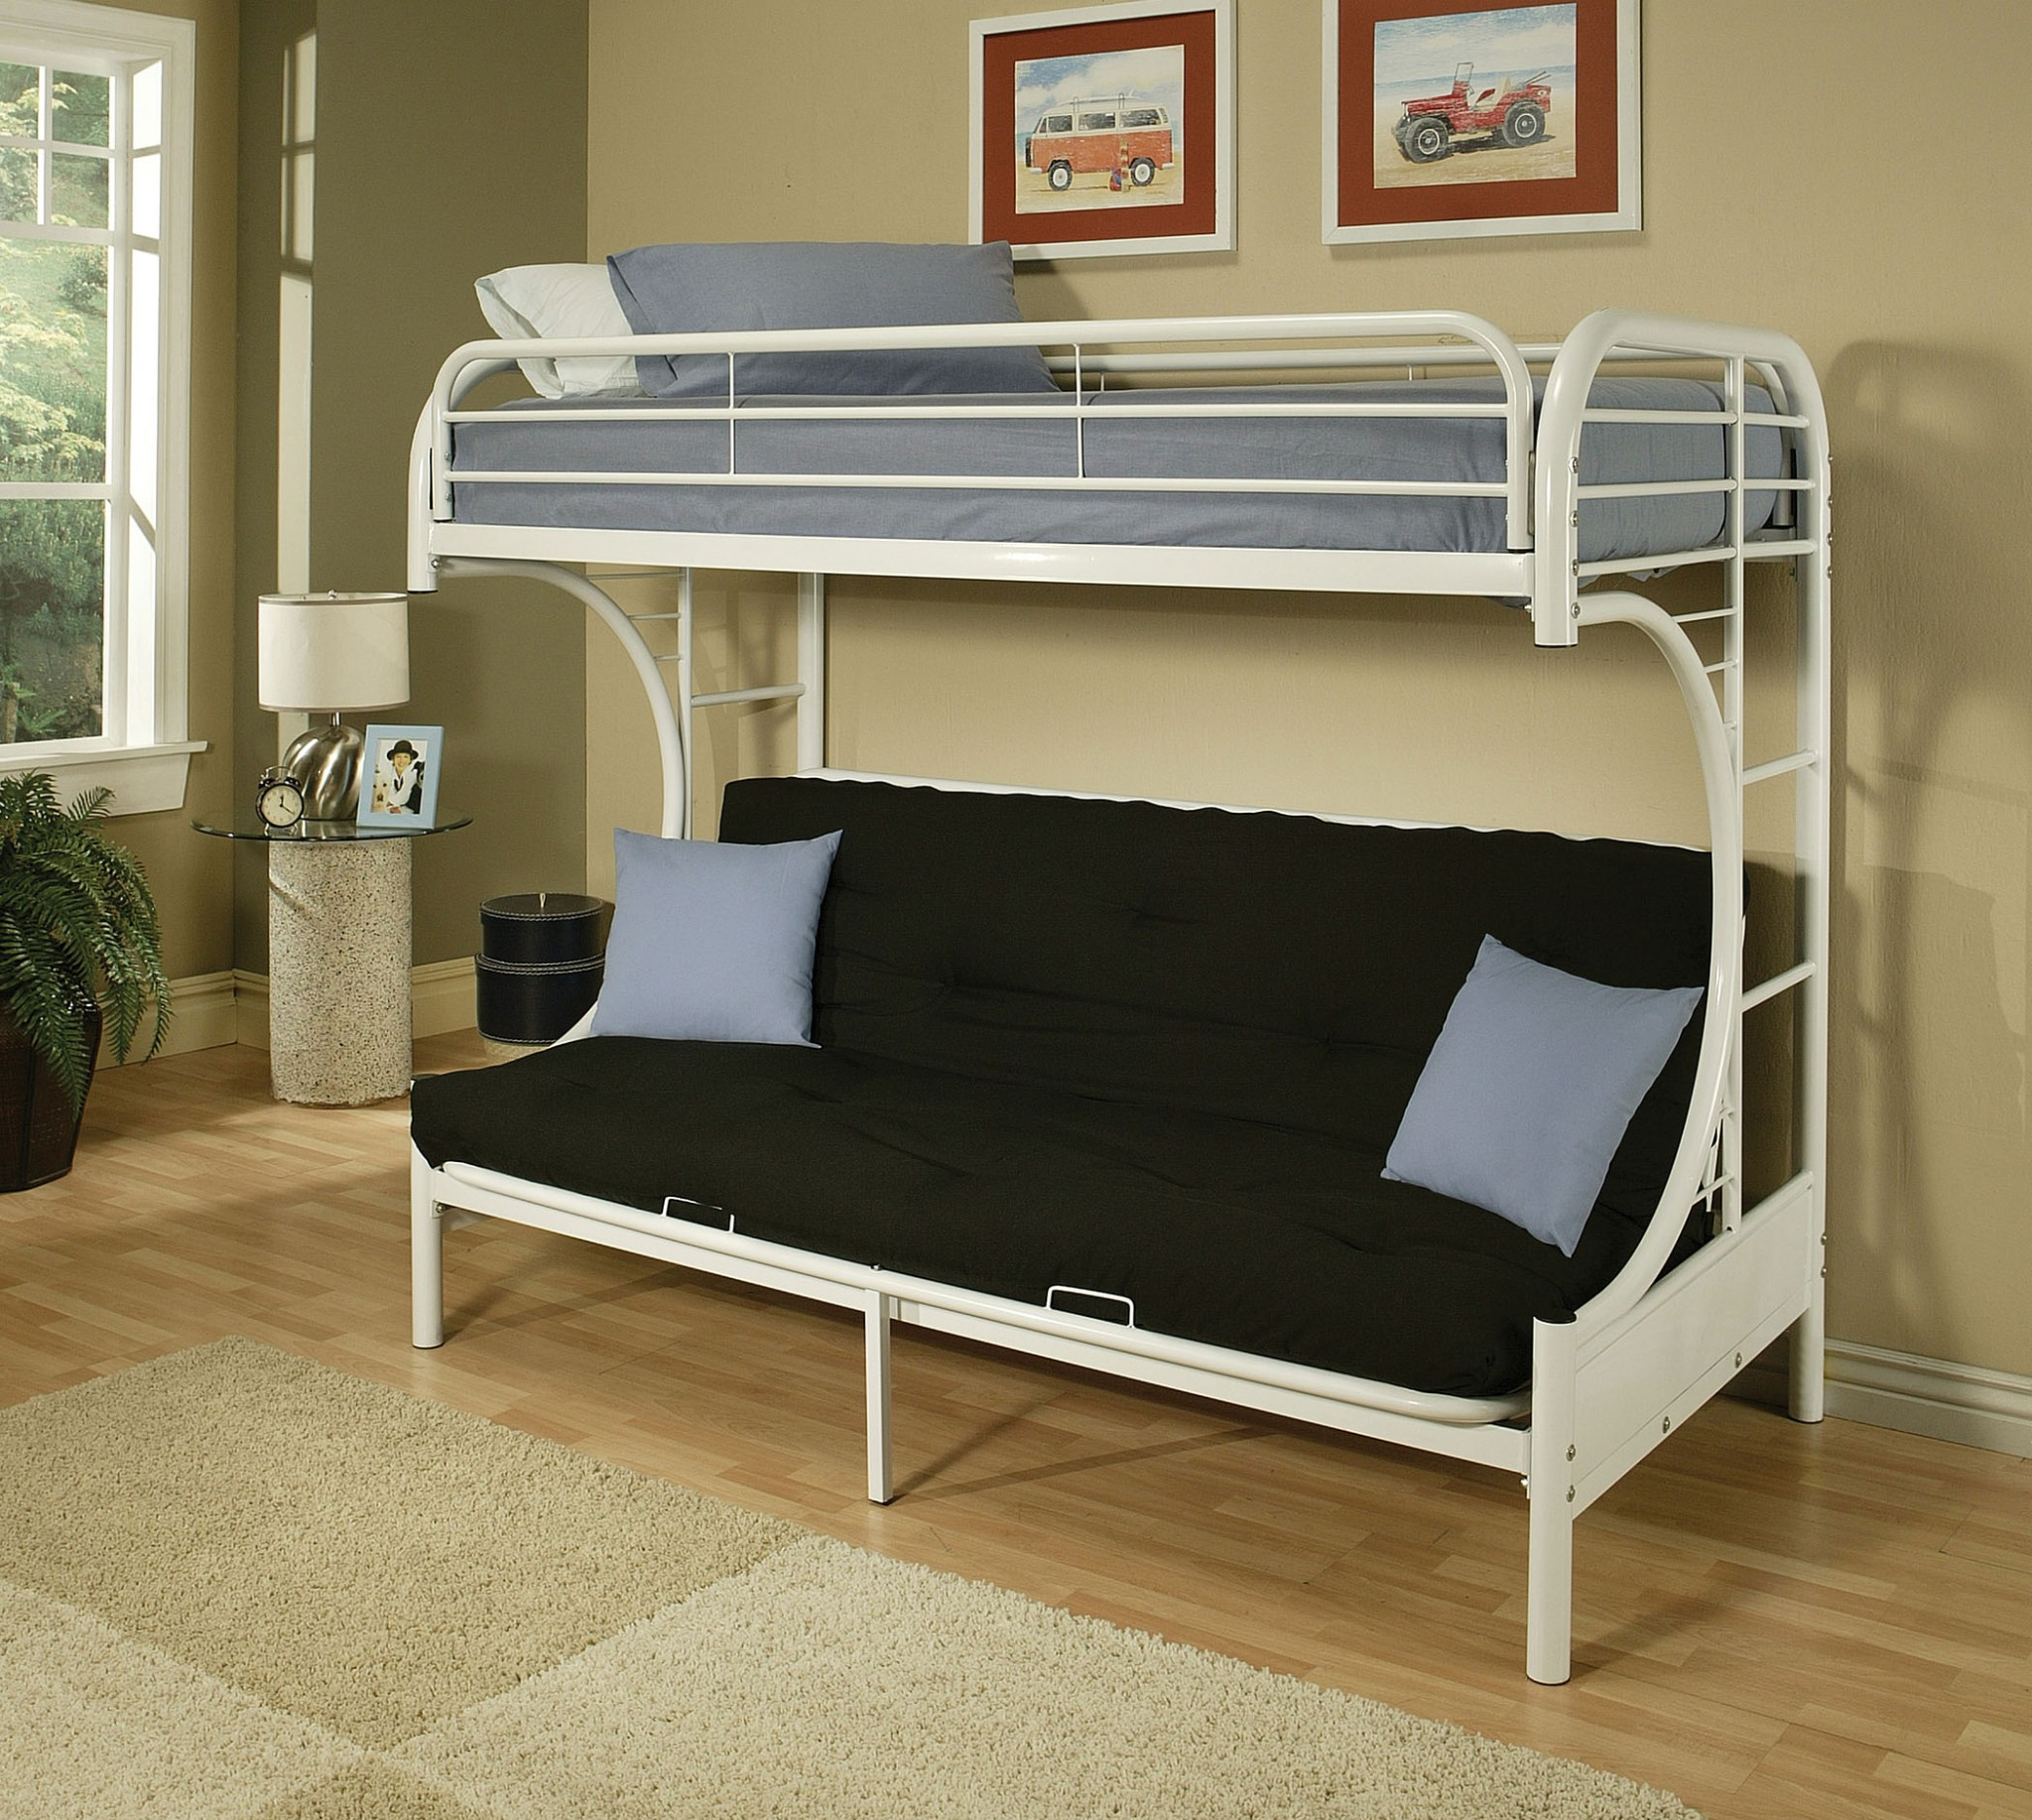 "78"" X 41"" X 65"" White Metal Tube Futon Bunk Bed"